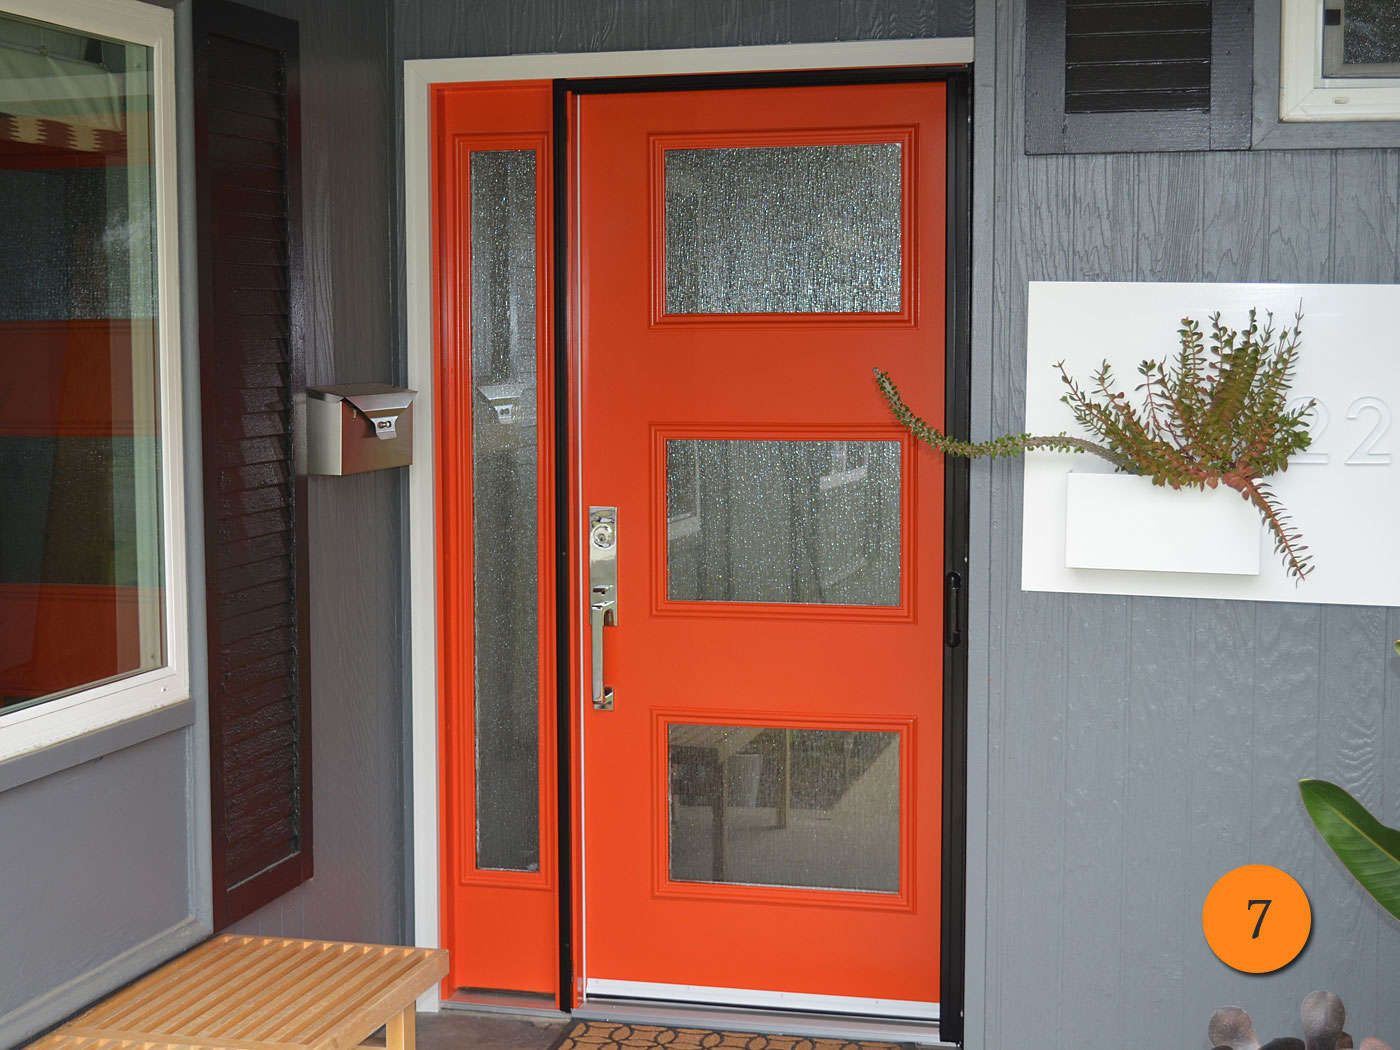 Contemporary Red Entry Door Therma Tru Smooth Star Model Pulse Ari S2xj With Sidelight Santa Ana Ca